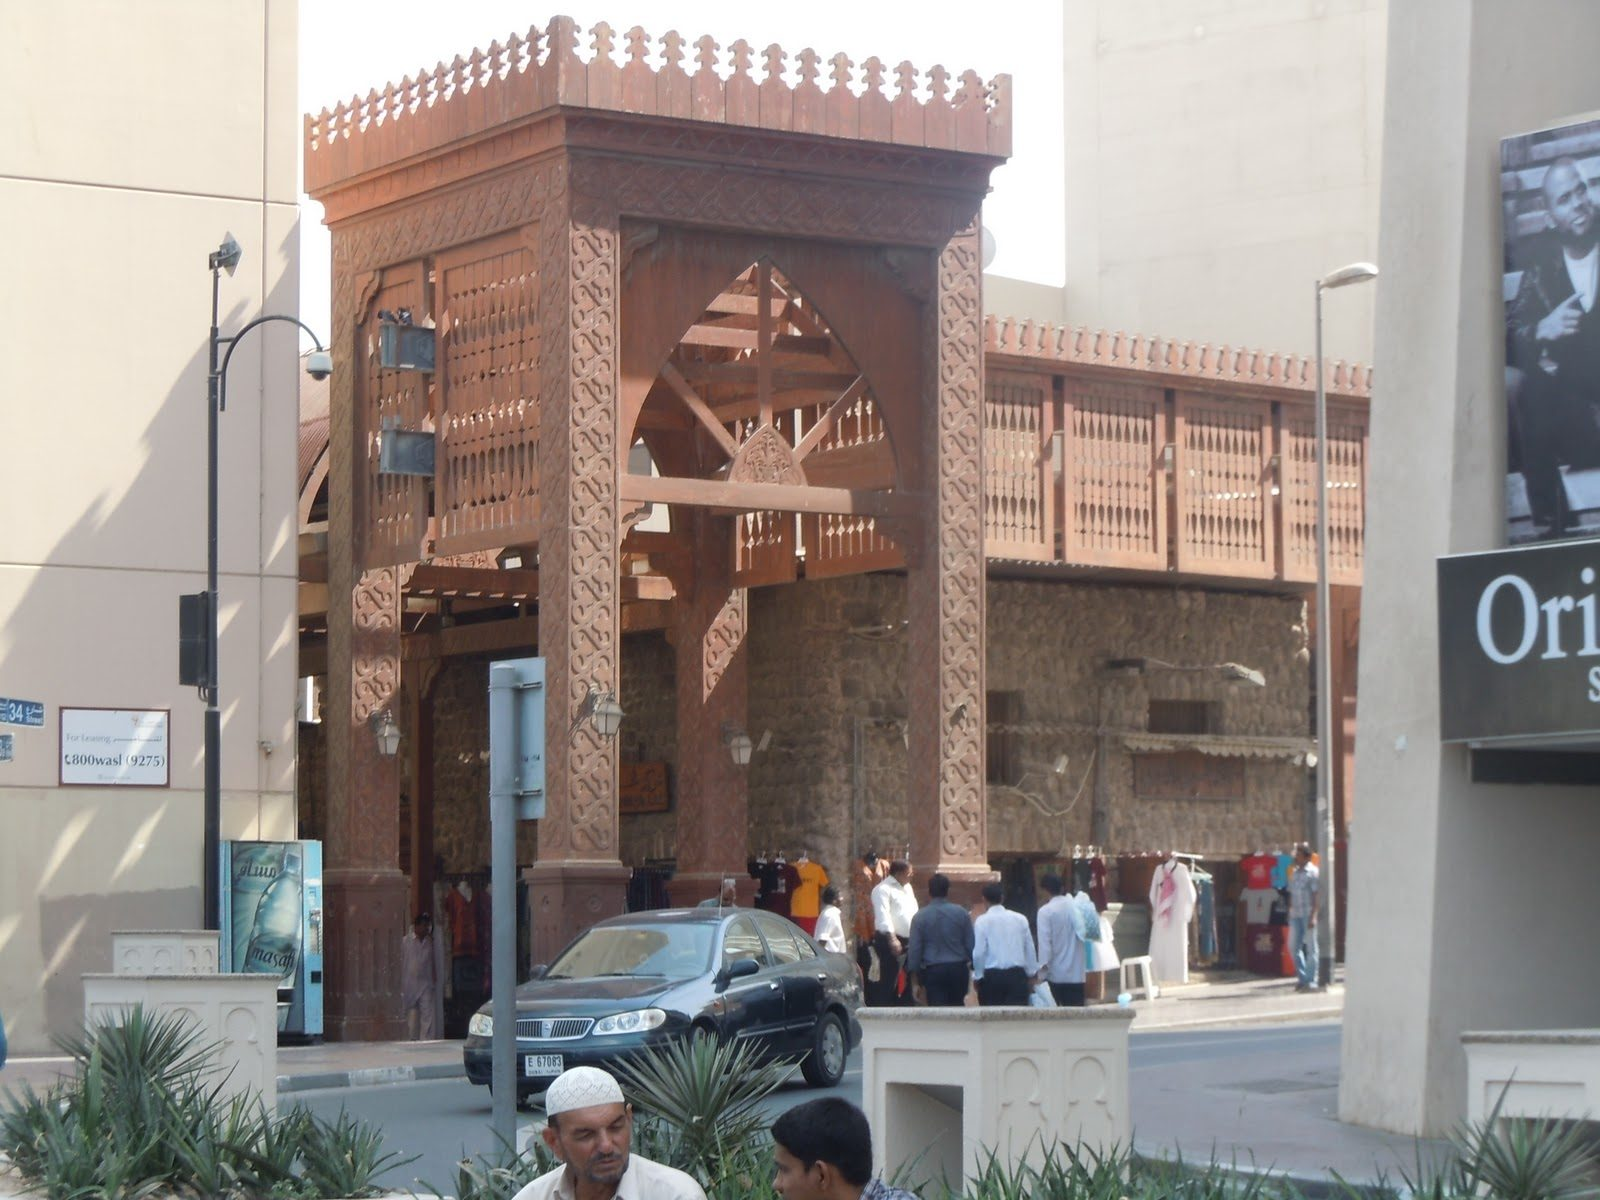 Pergola at Dubai Gold Souq